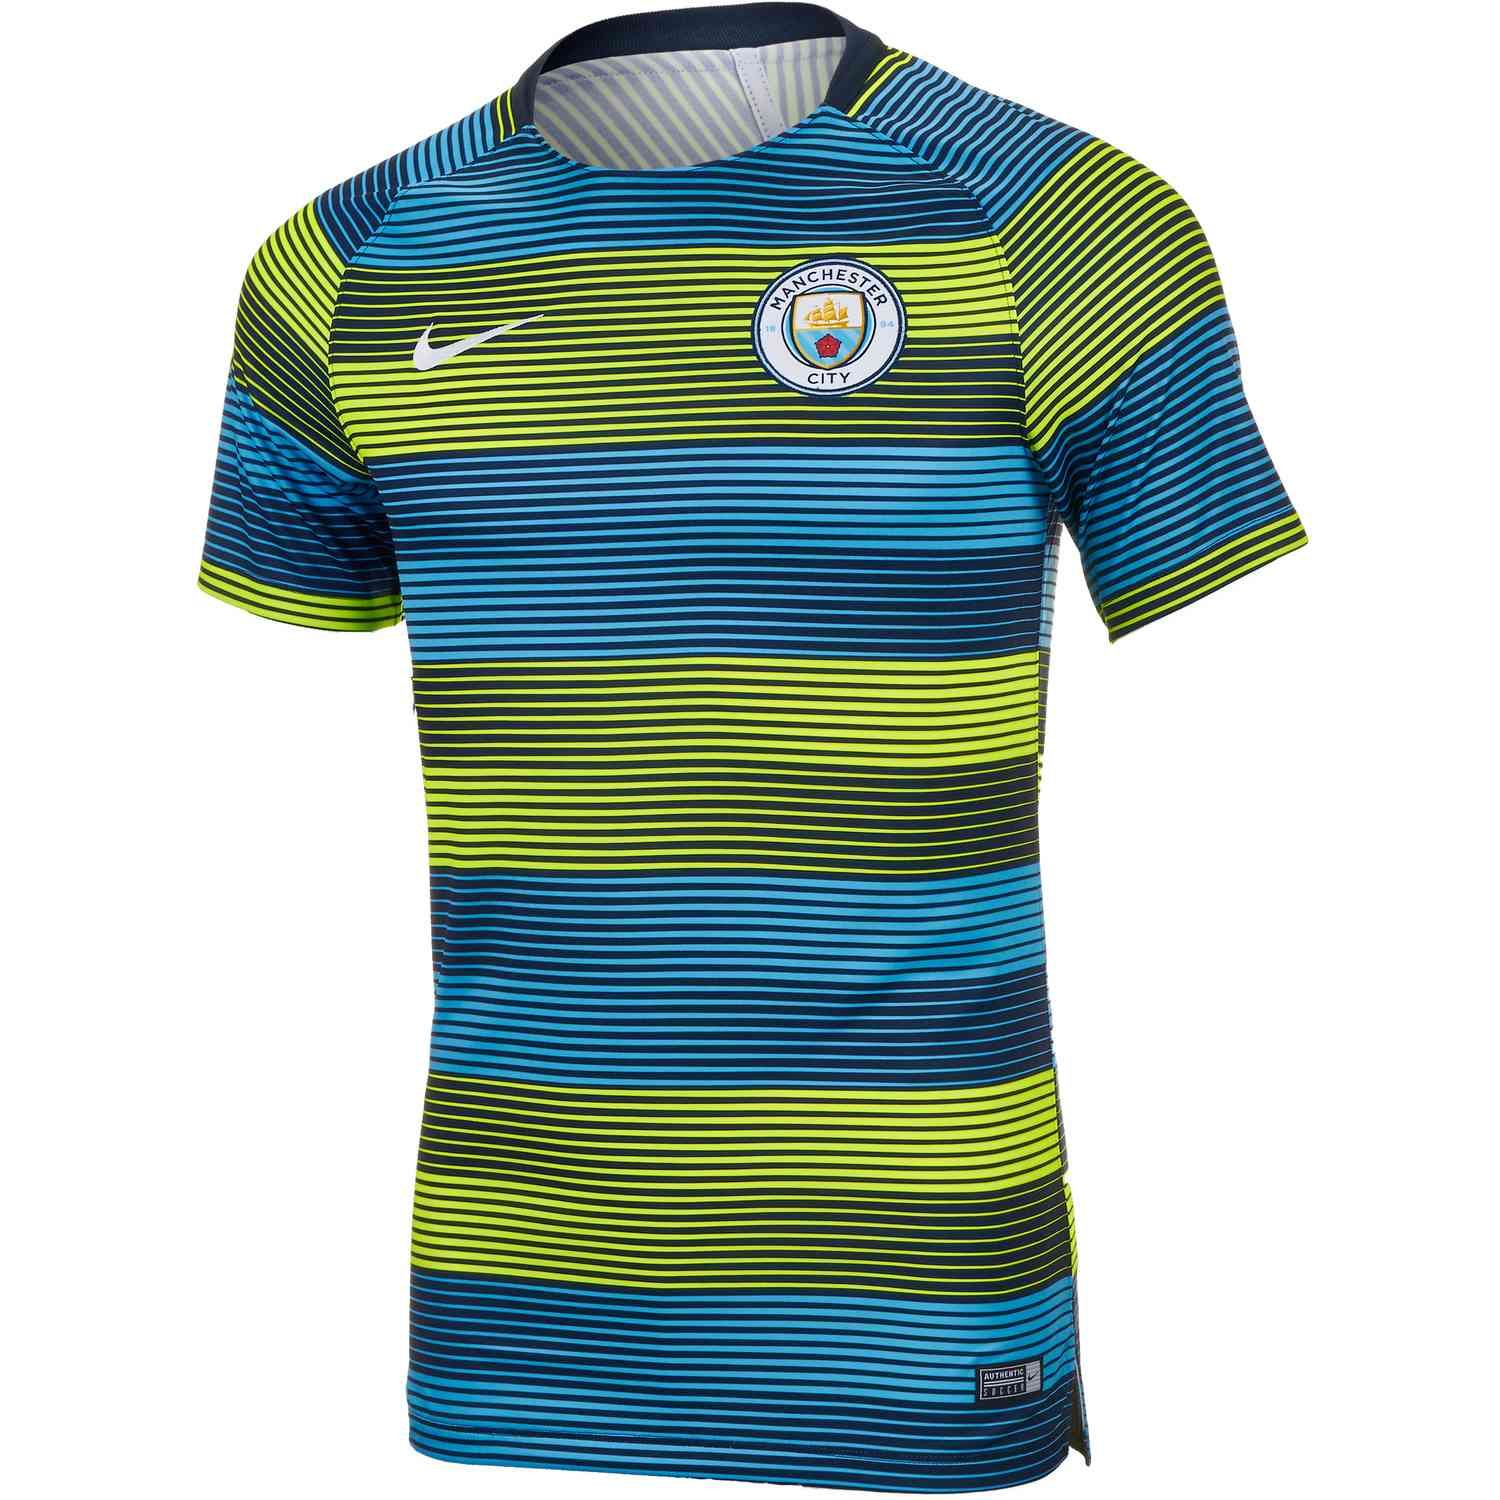 2018 19 Nike Manchester City Squad Top. Get this shirt from soccerpro.com! 881fde2bc